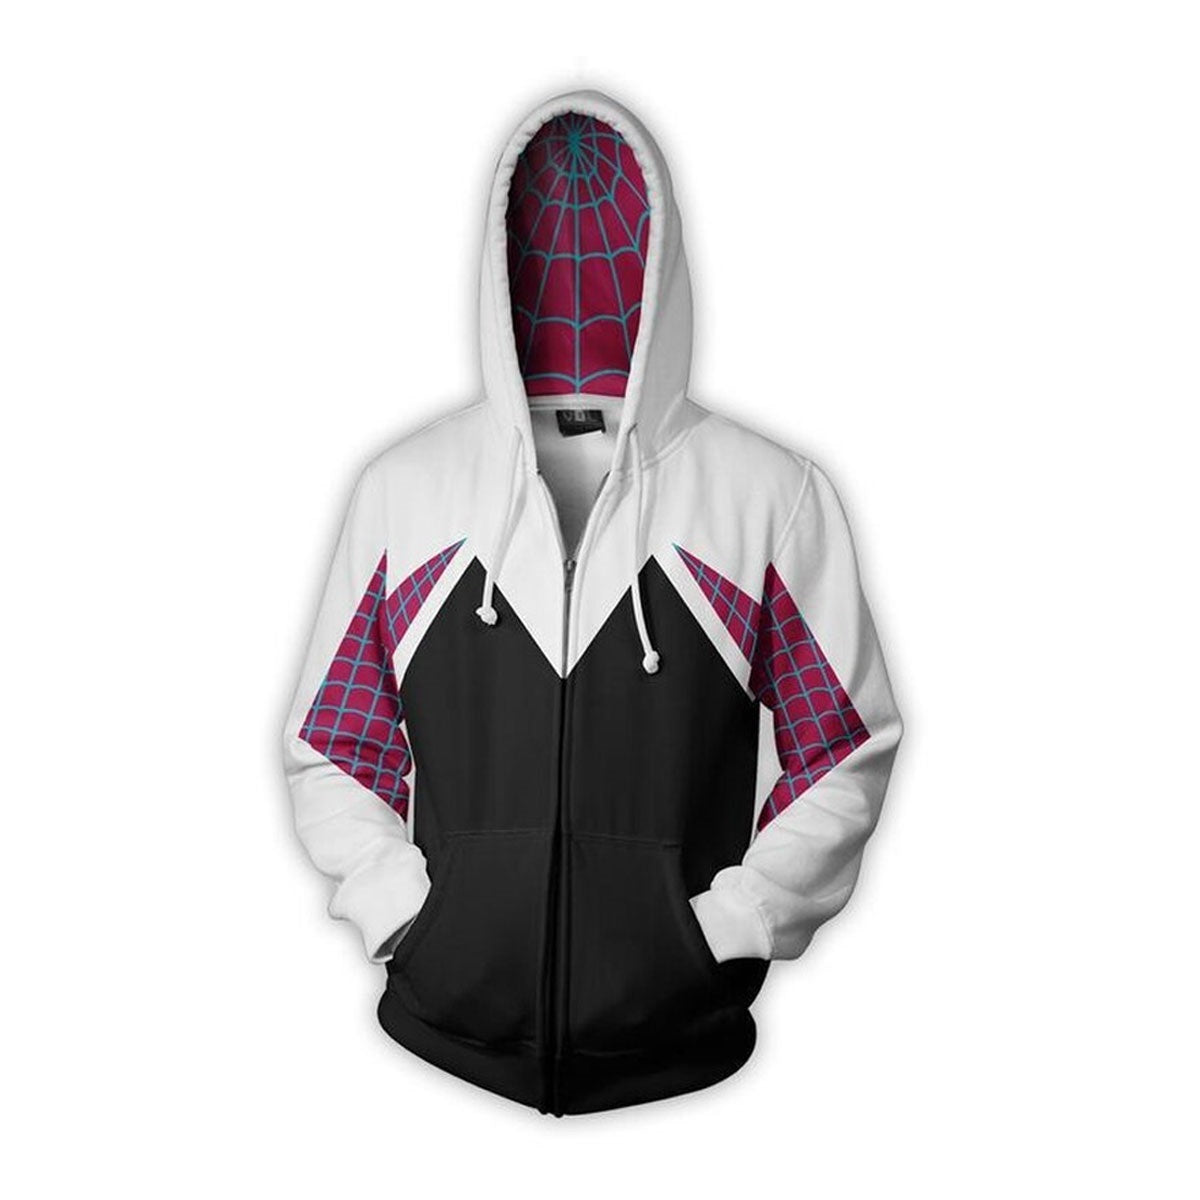 Polyester & Spandex Women's Spider Hoodie with Full Zipper Closure